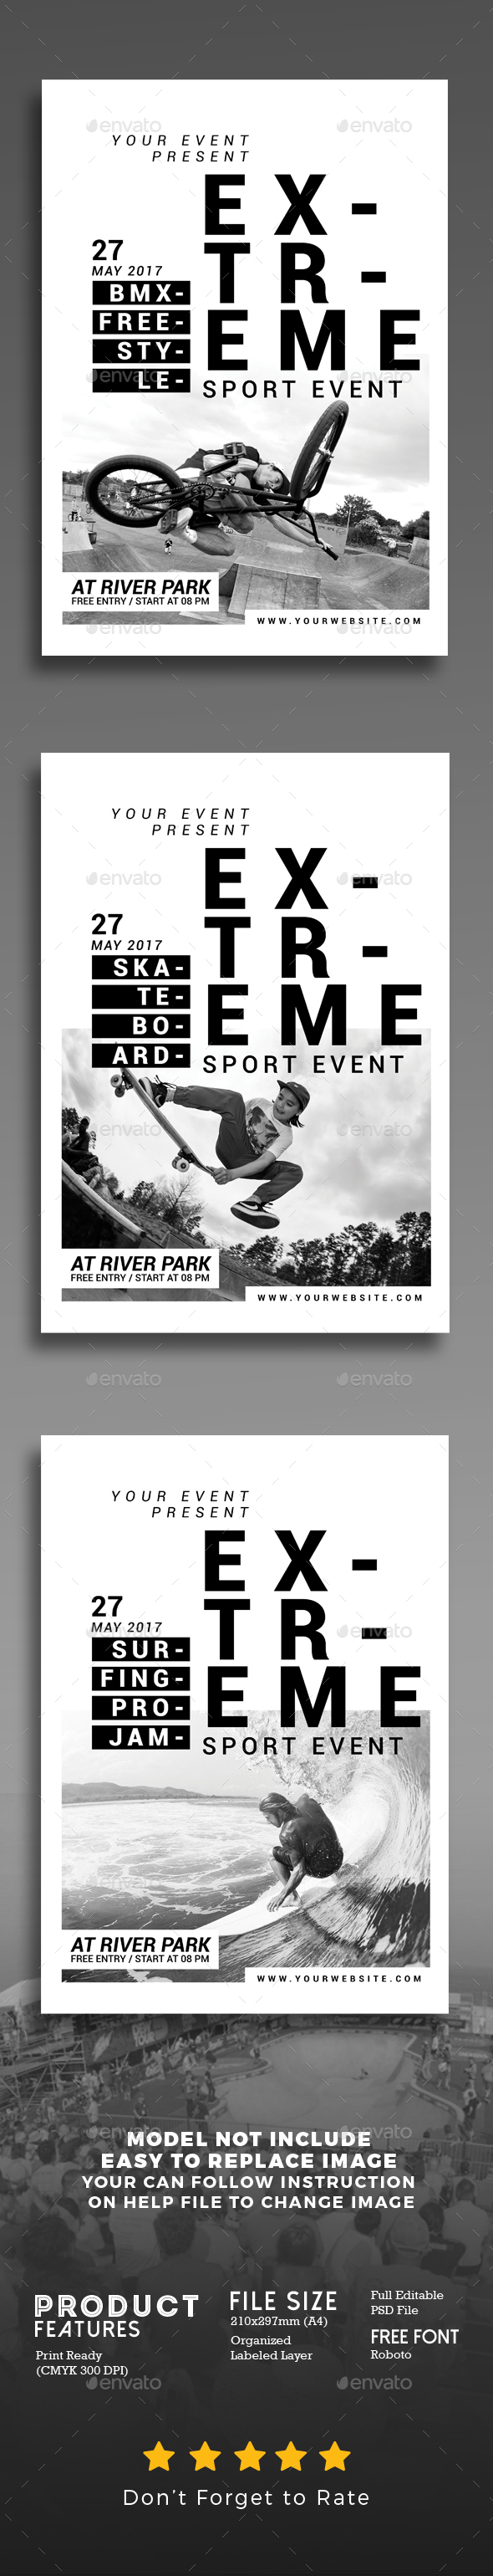 Extreme Sport Event Flyer - Events Flyers